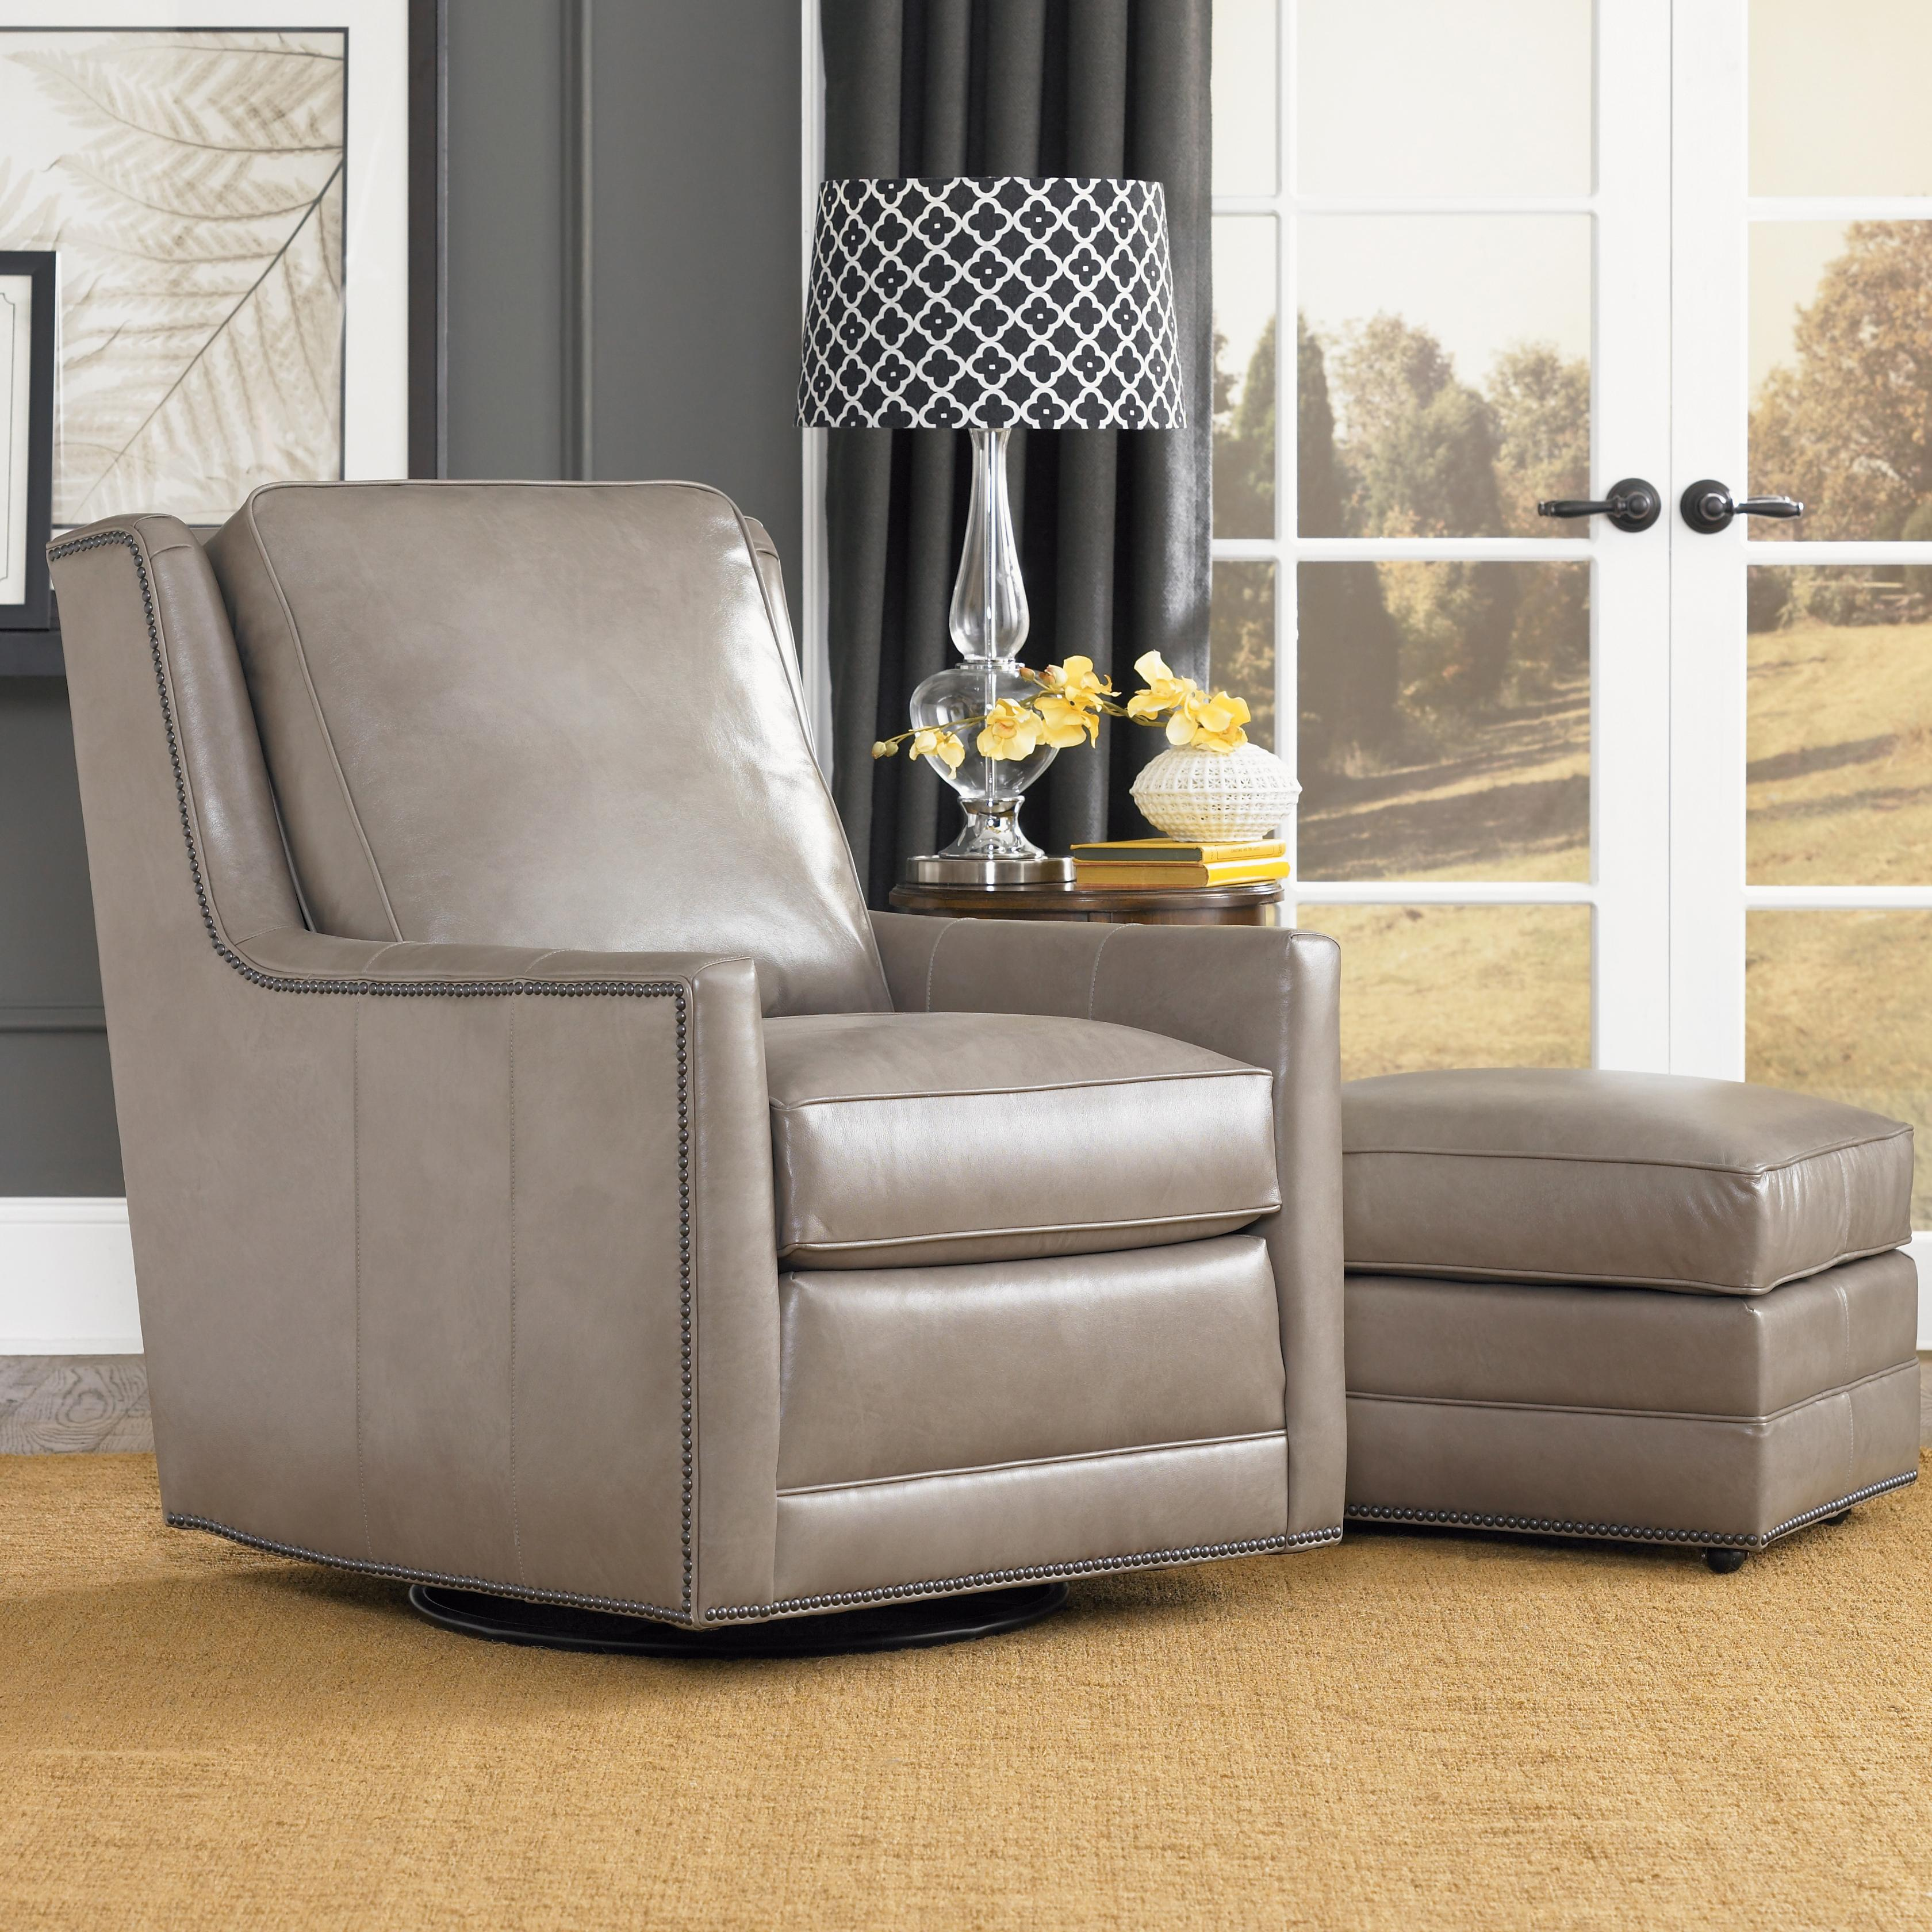 Transitional Swivel Chair With Nailhead Trim By Smith